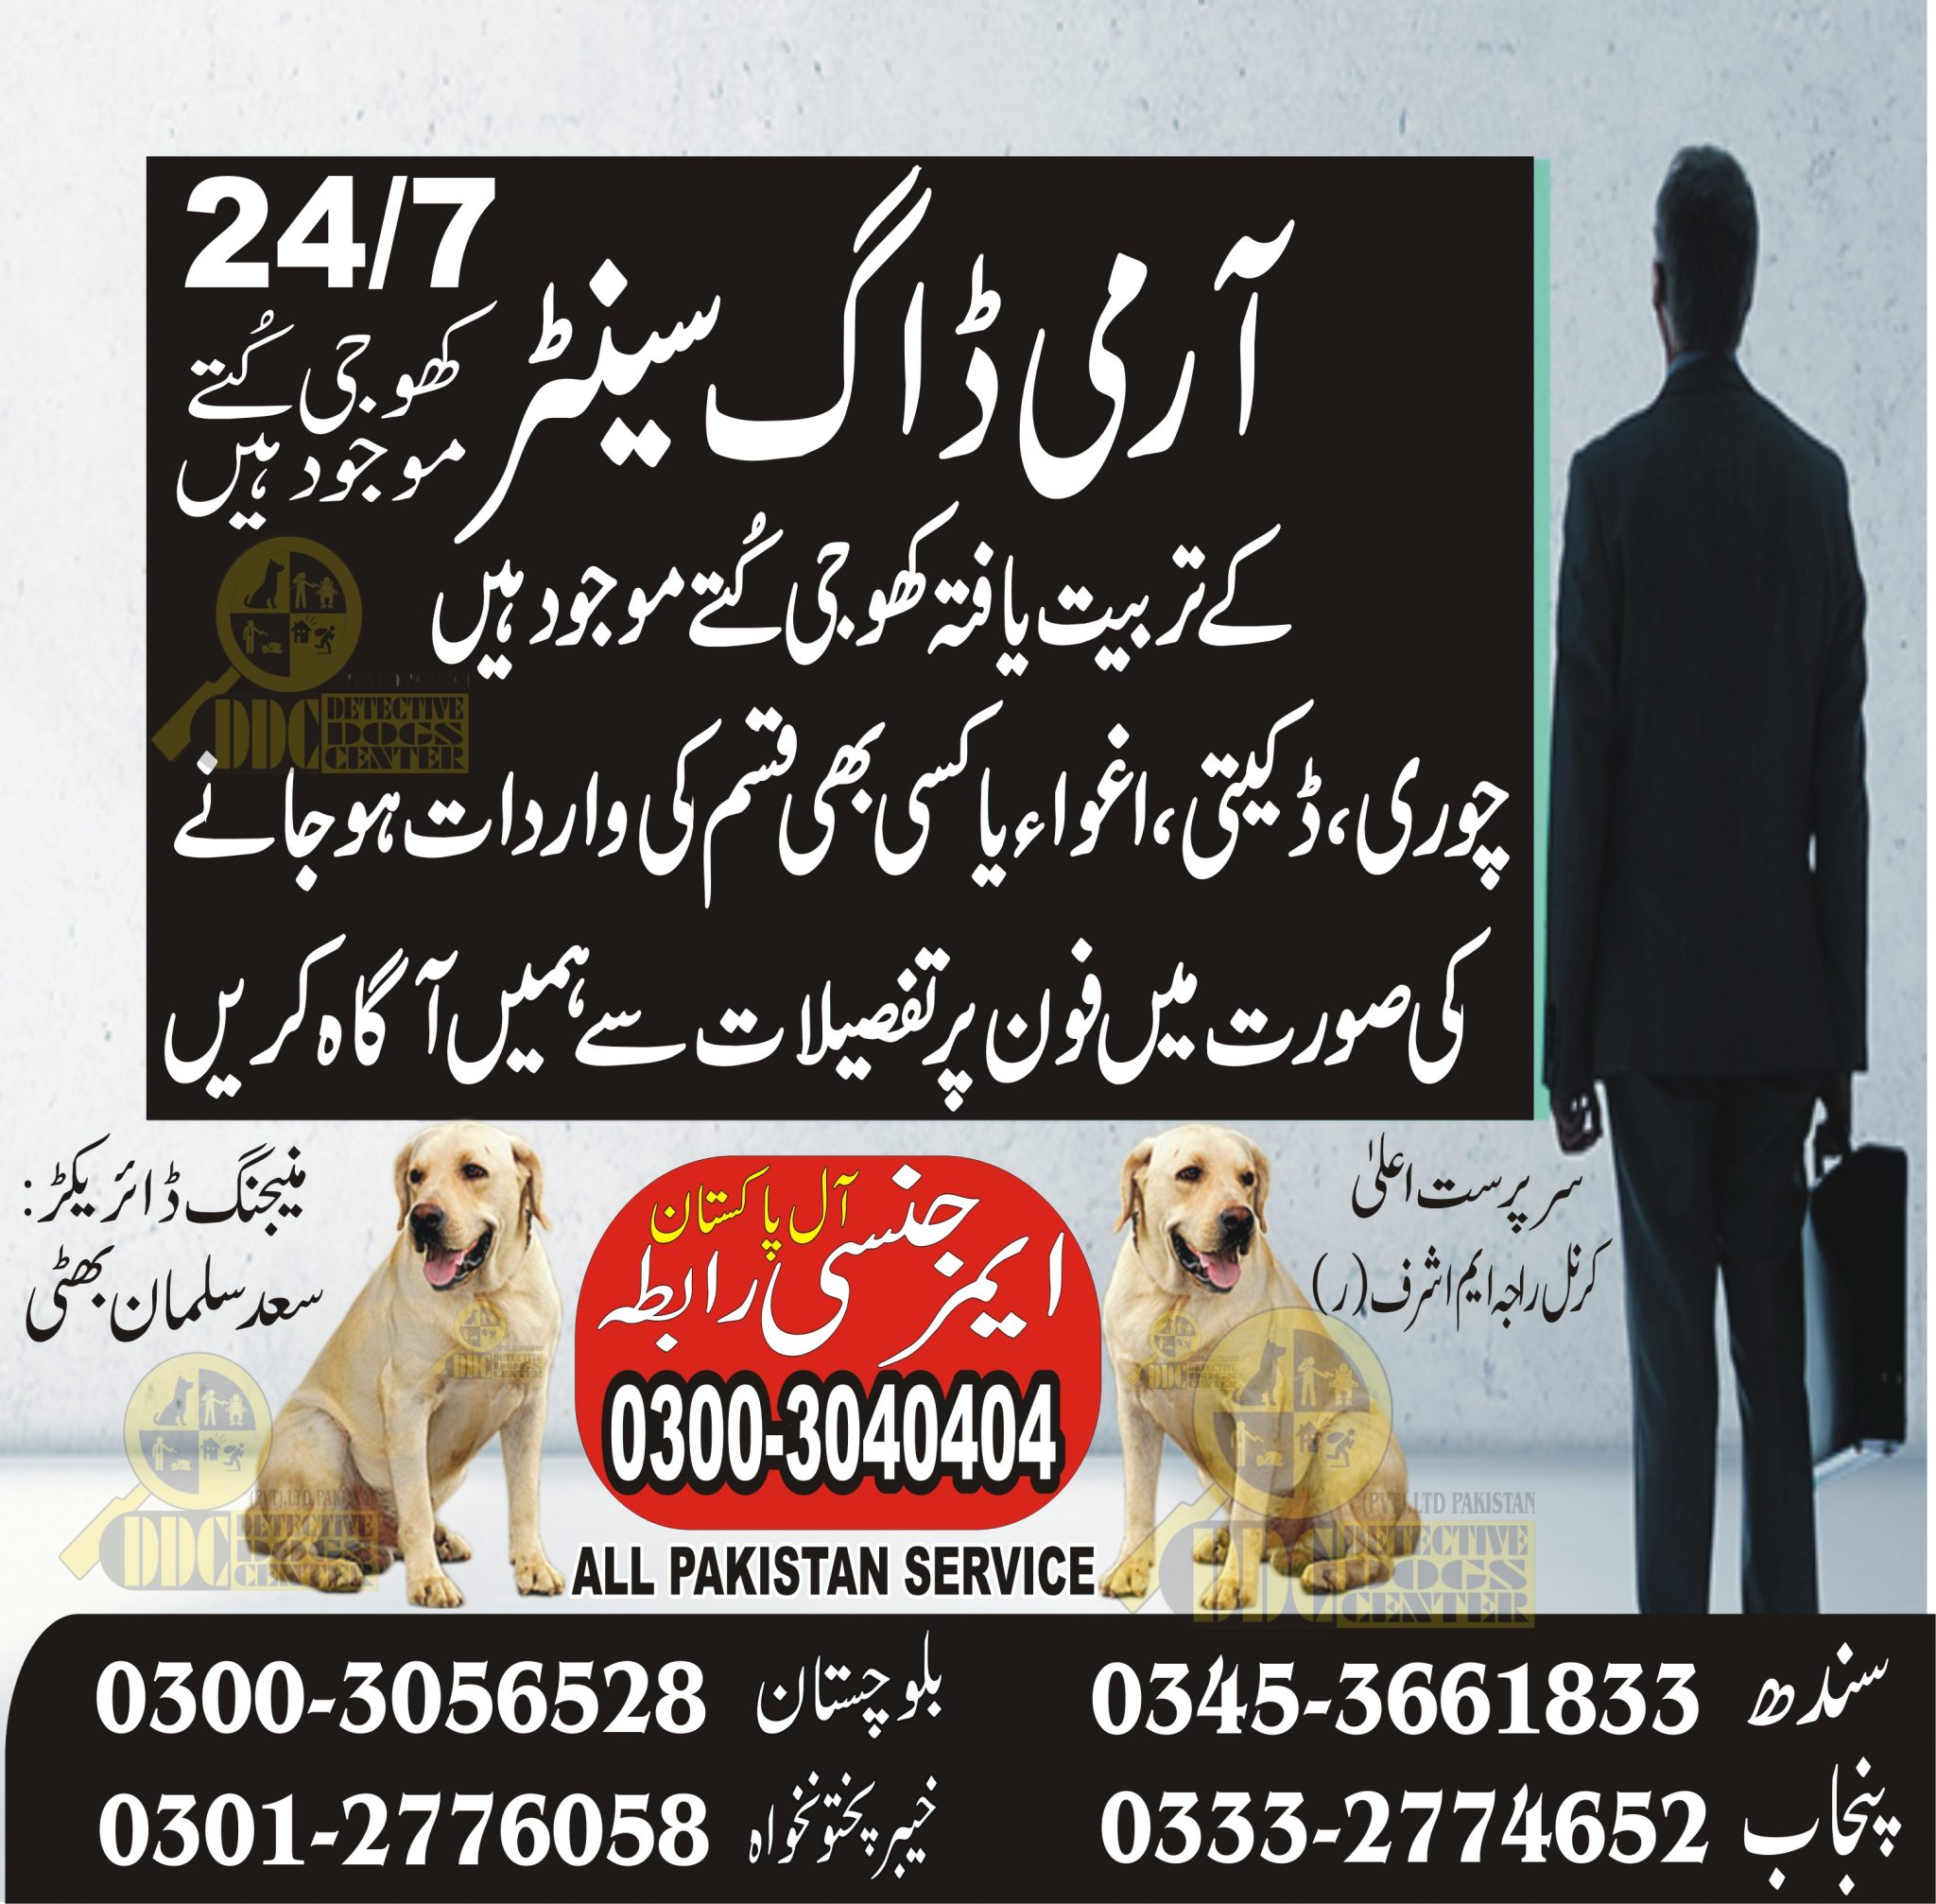 Army Dog Center All Pakistan Service Available